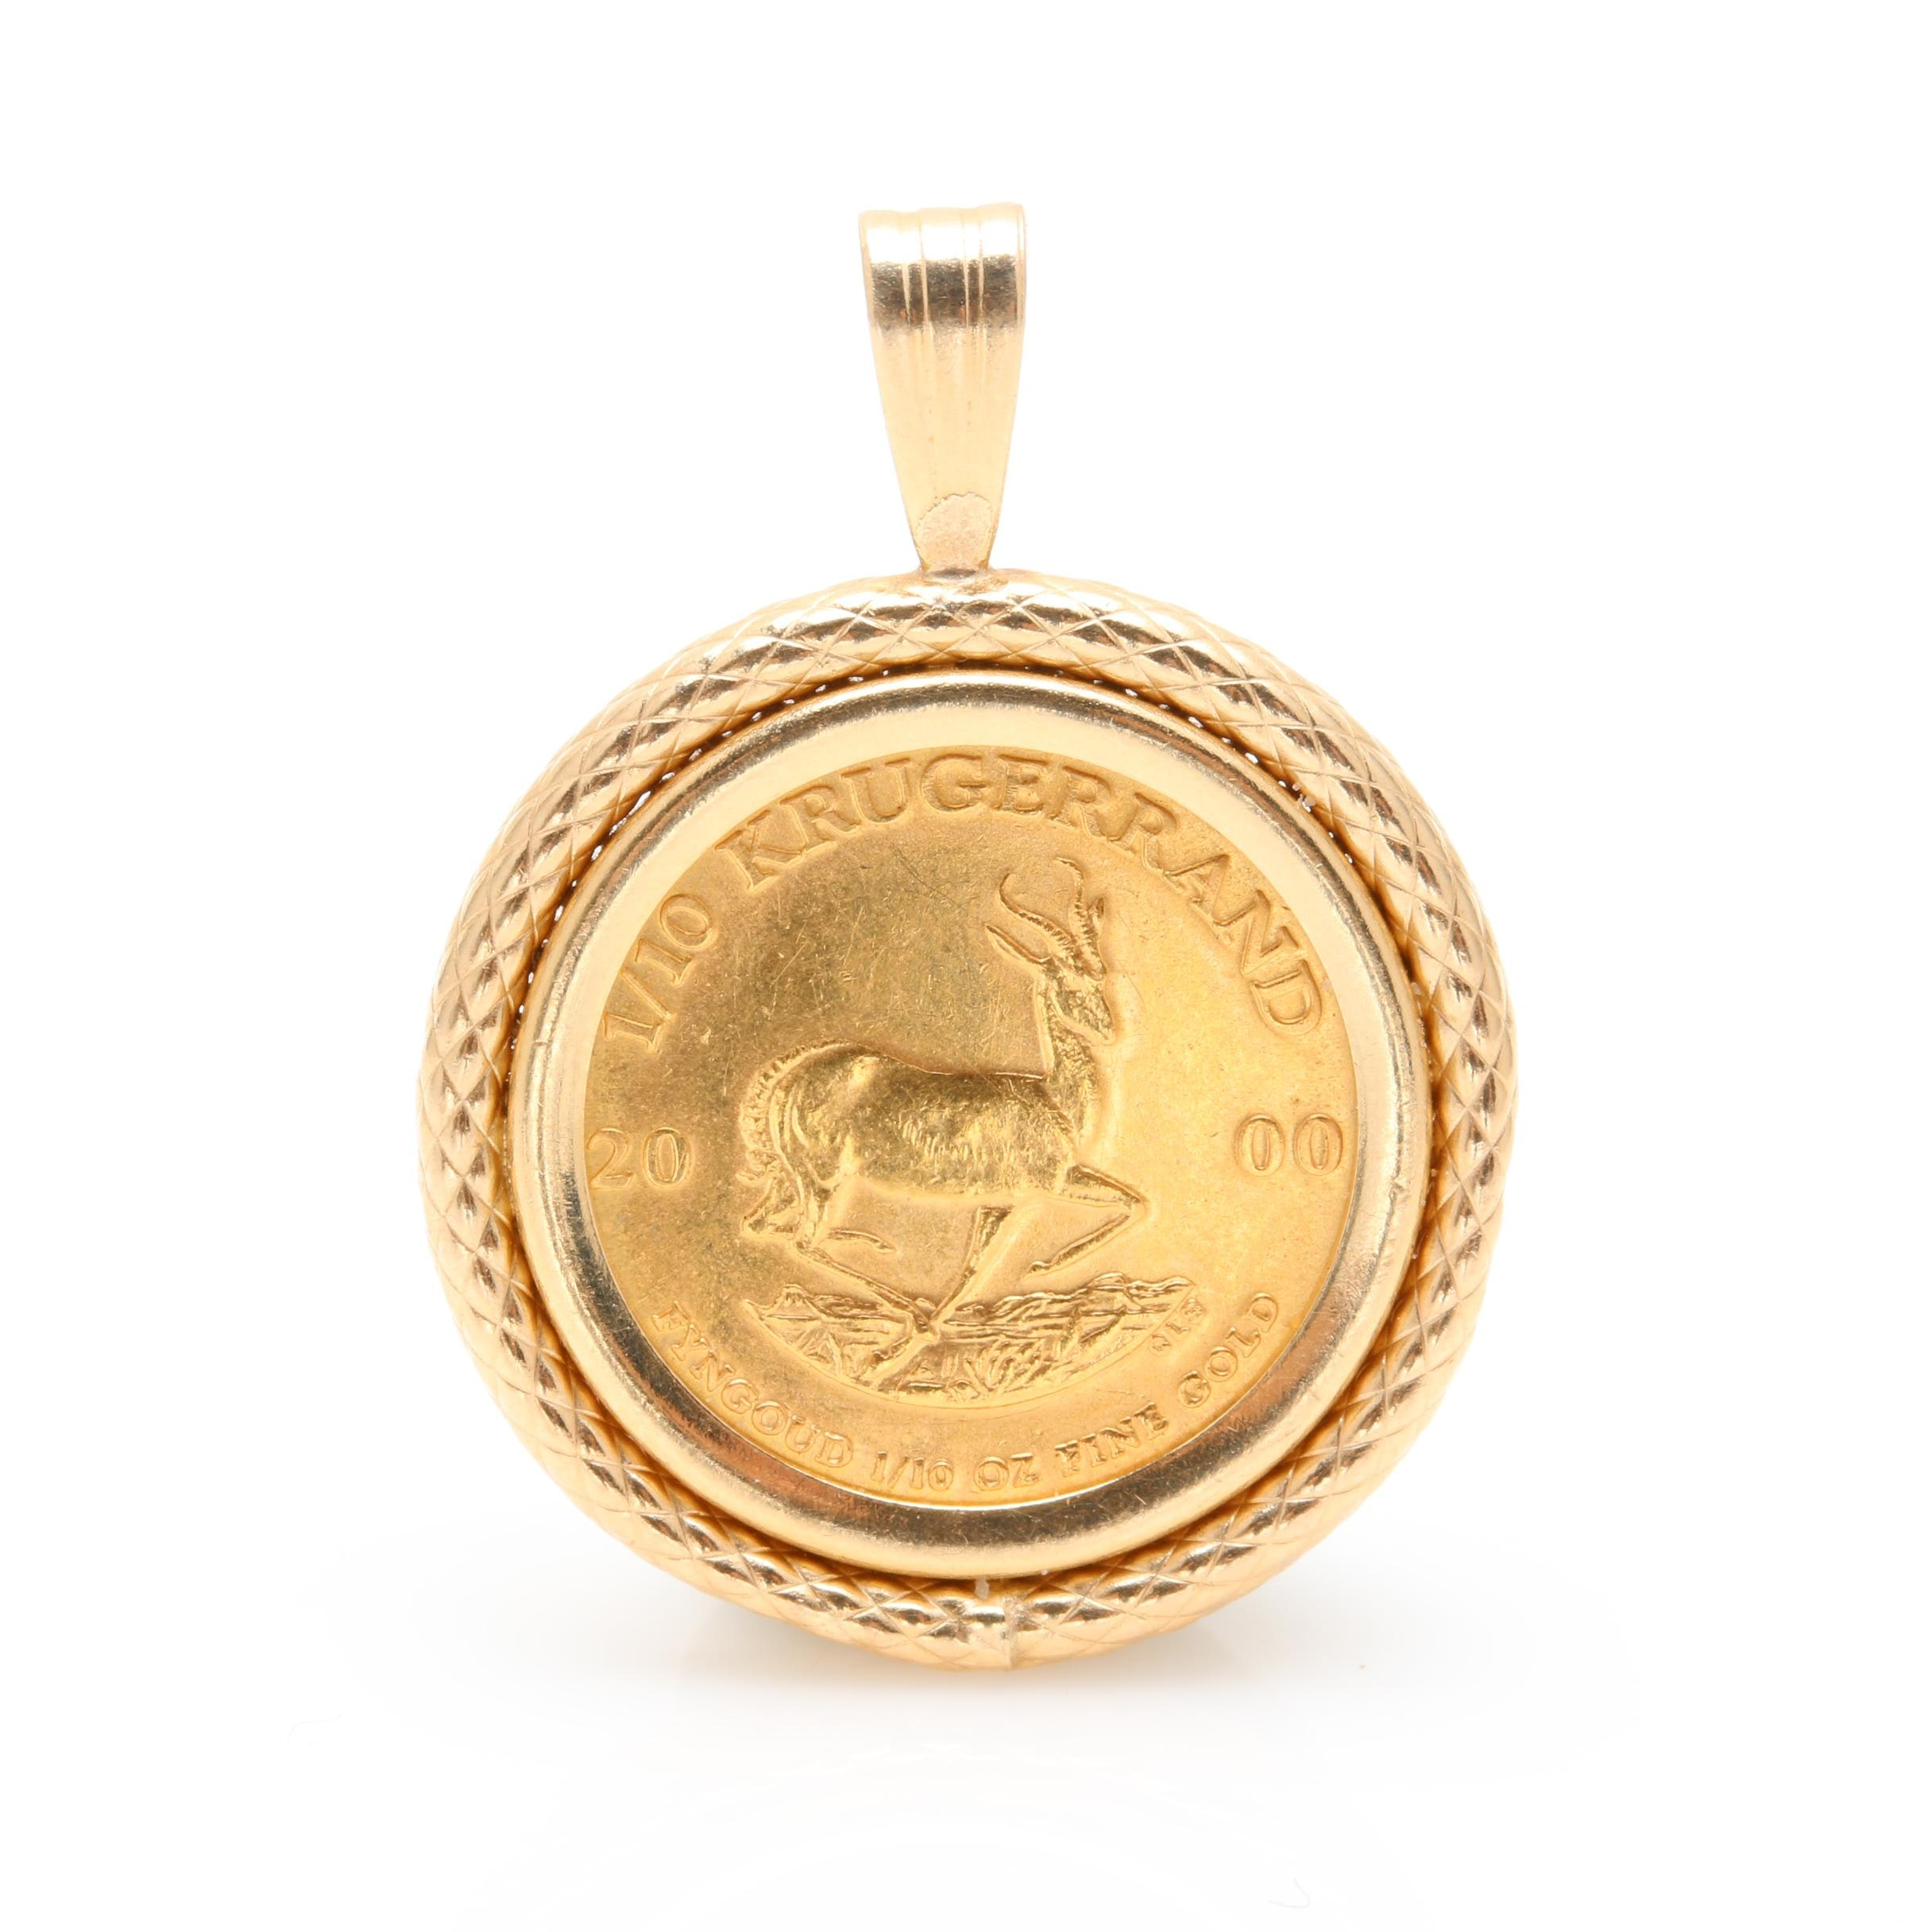 2000 1/10th Krugerrand 22K and 14K Yellow Gold Bullion Coin Pendant